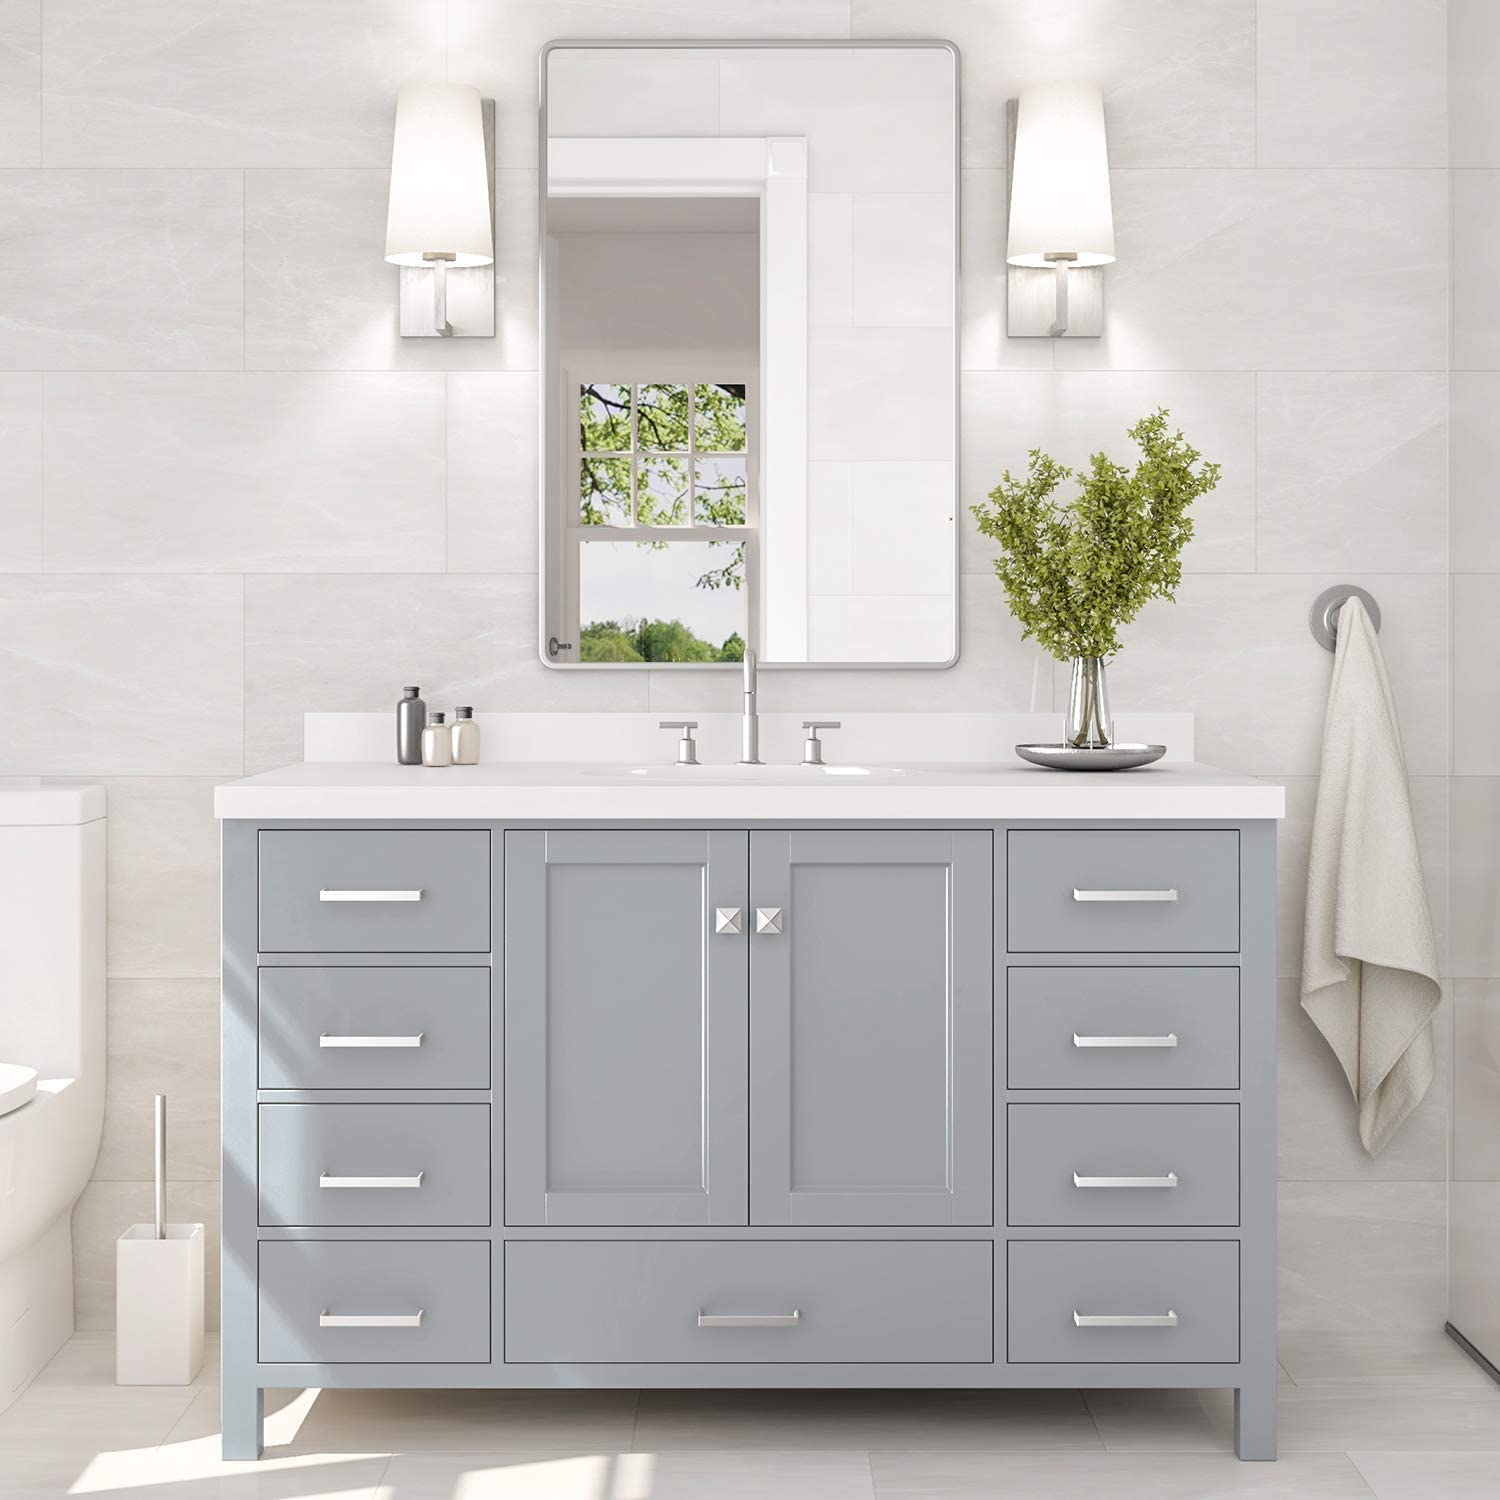 Amazon Com Ariel Bathroom Vanity 55 Inch With Pure White Quartz Countertop And Oval Sink In Gray 2 Soft Closing Doors 9 Full Extension Dovetail Drawers With Backsplash No